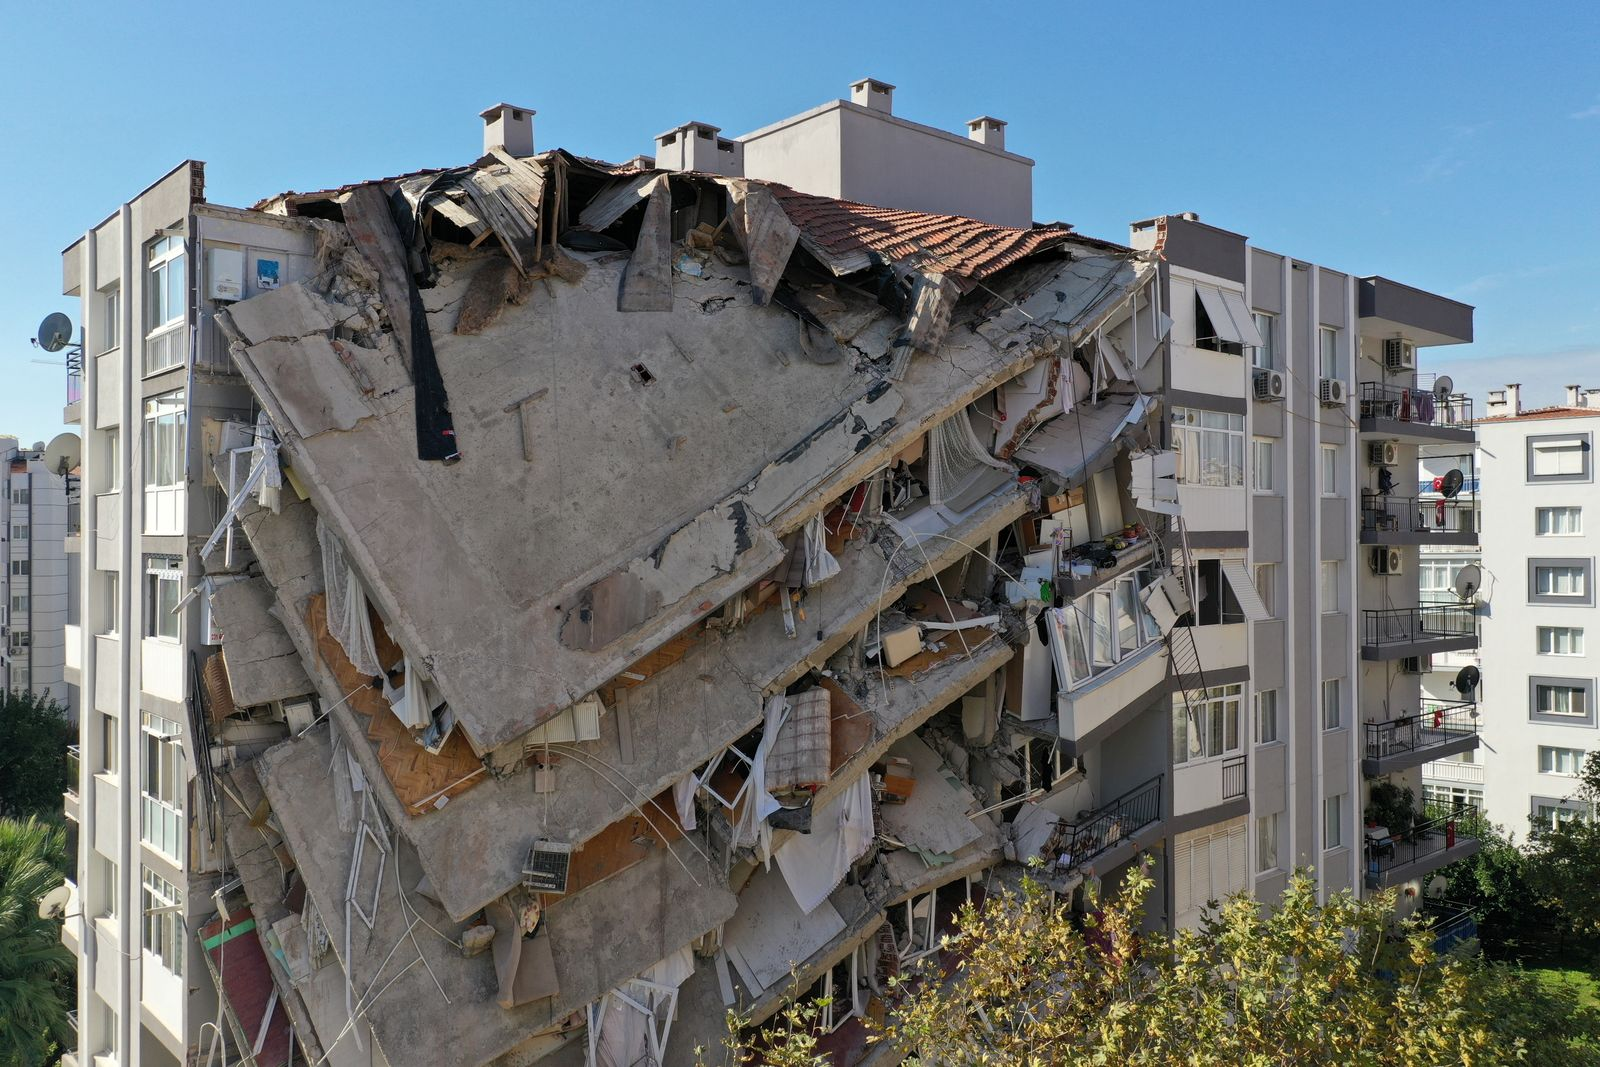 An aerial view shows a damaged building after an earthquake in Izmir